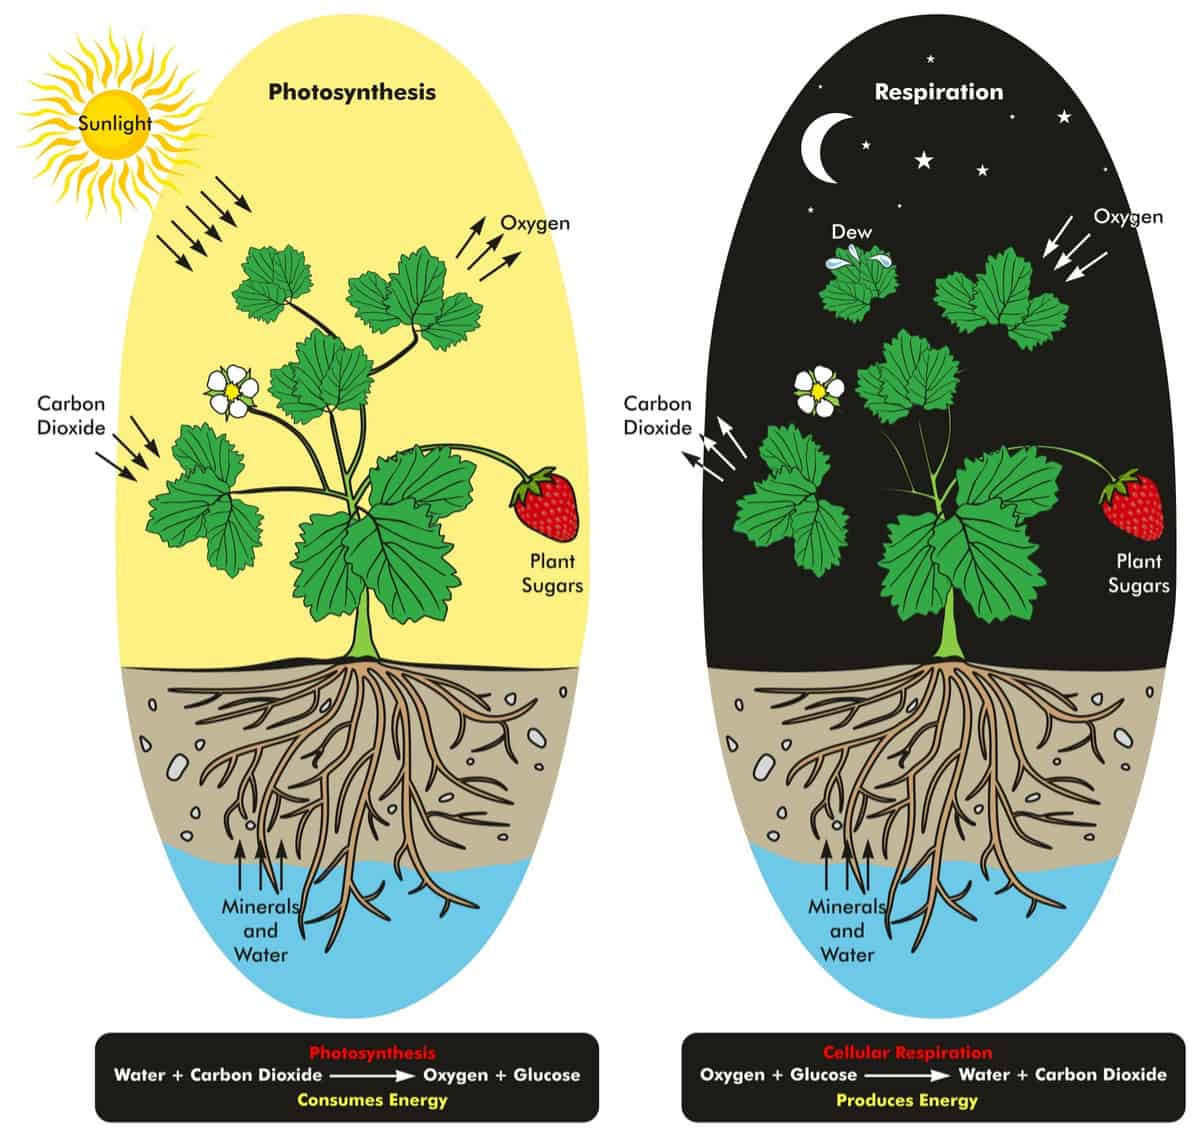 Plant respiration cycle between day and night.